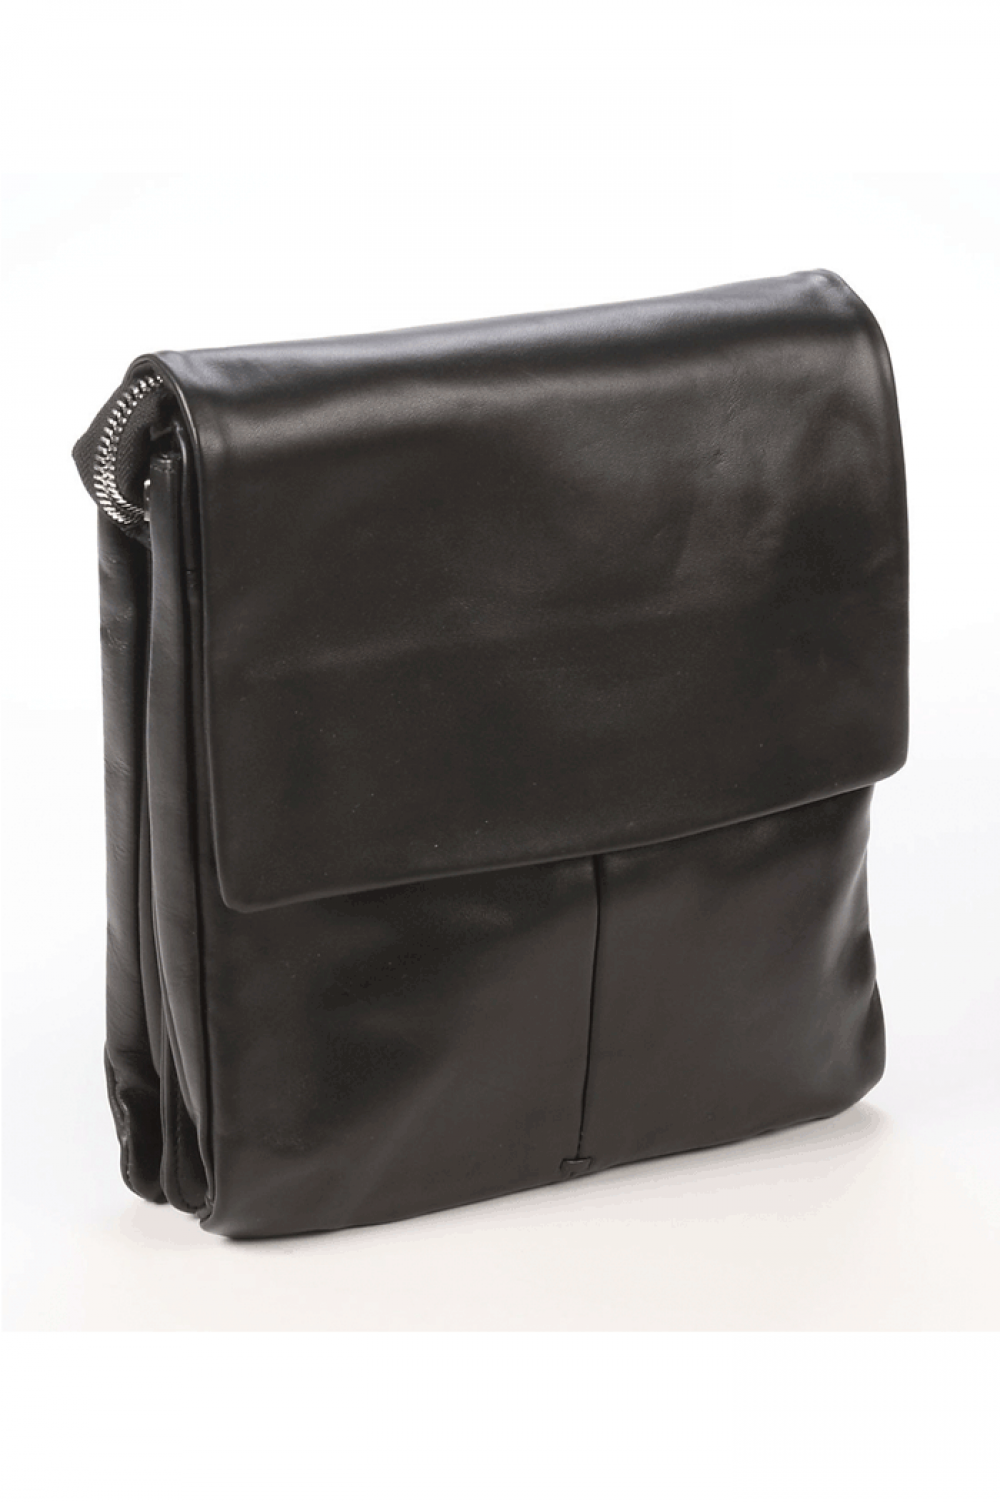 Sport bag from natural leather - 441721